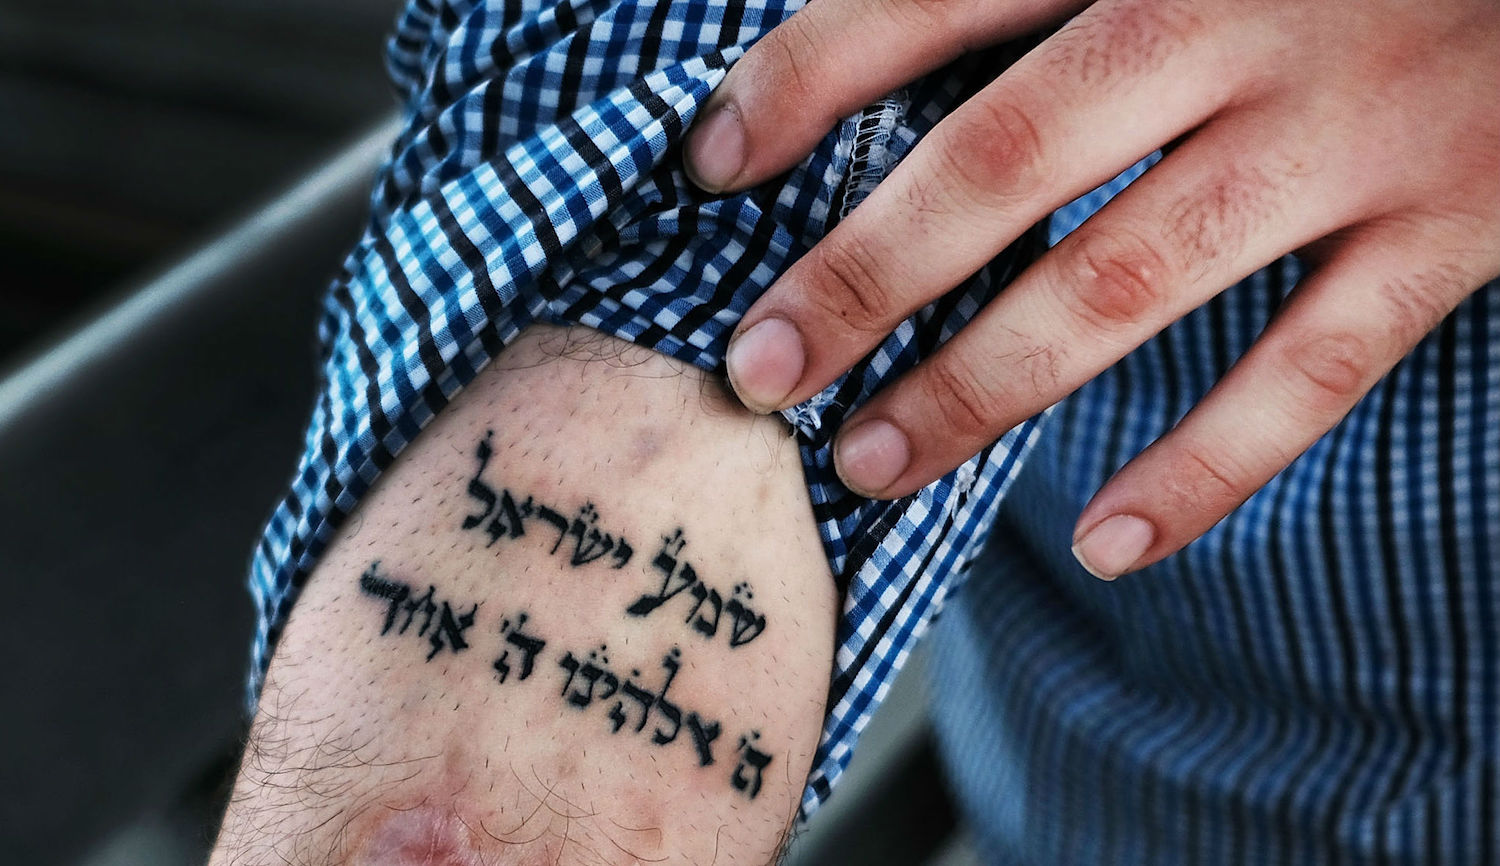 A patient at a Brooklyn methadone clinic looks to a tattoo of the Sh'ma prayer in his fight with addiction. Spencer Platt/Getty Images.